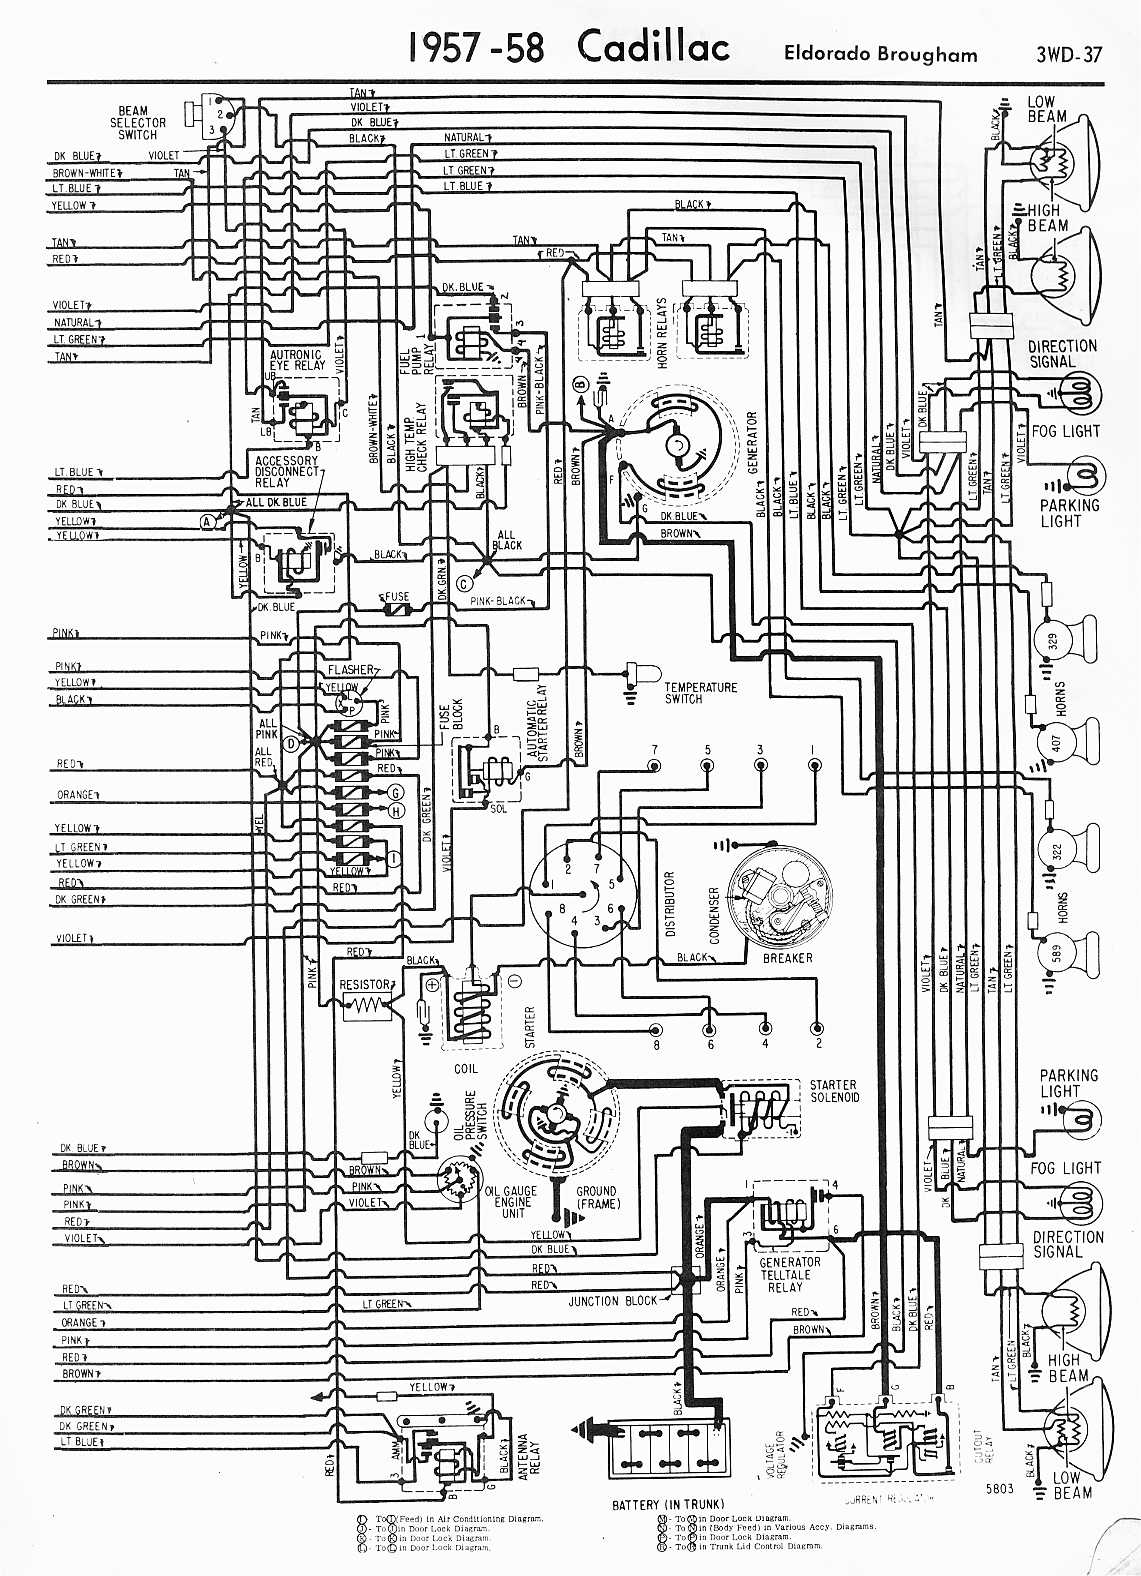 MWireCadi65_3WD 037 cadillac wiring diagrams 1957 1965 1960 Chevy Wiring Diagram at fashall.co